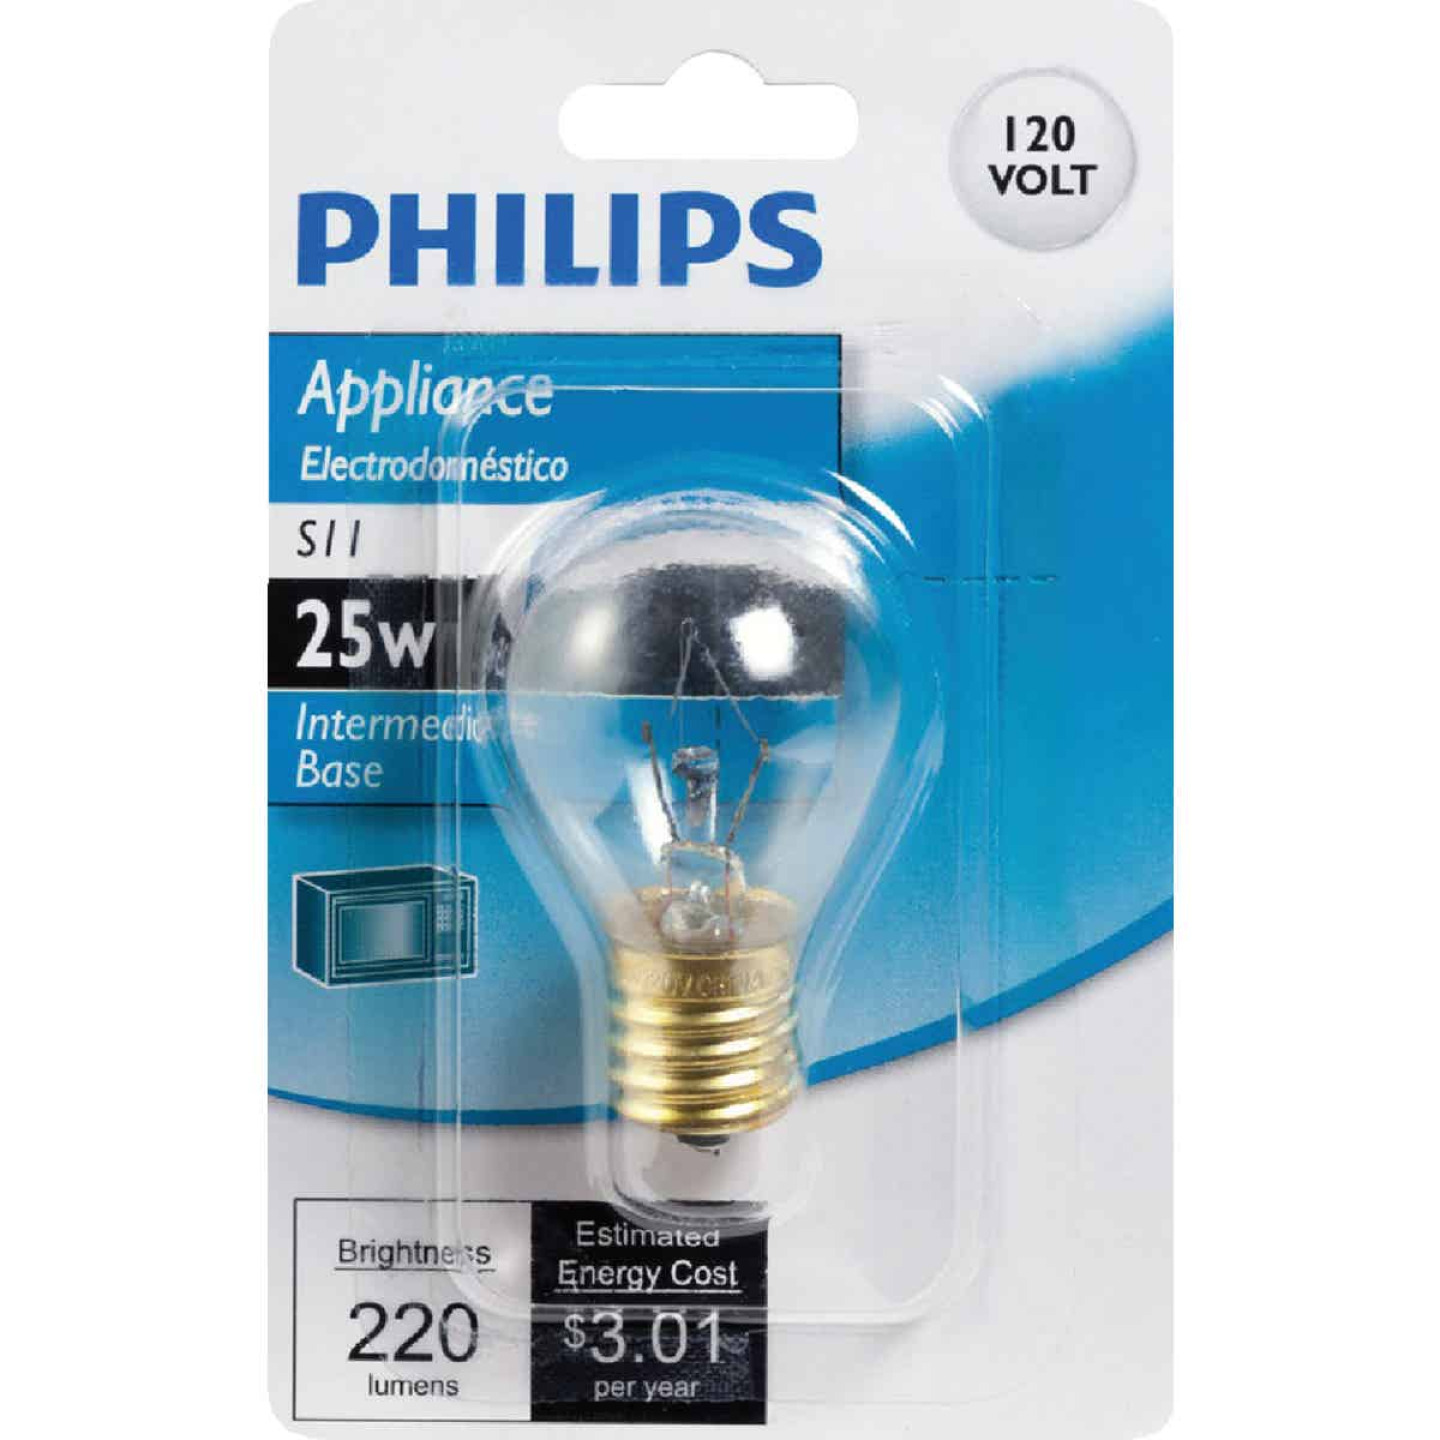 Philips 25W Clear Intermediate S11 Incandescent Appliance Light Bulb Image 2